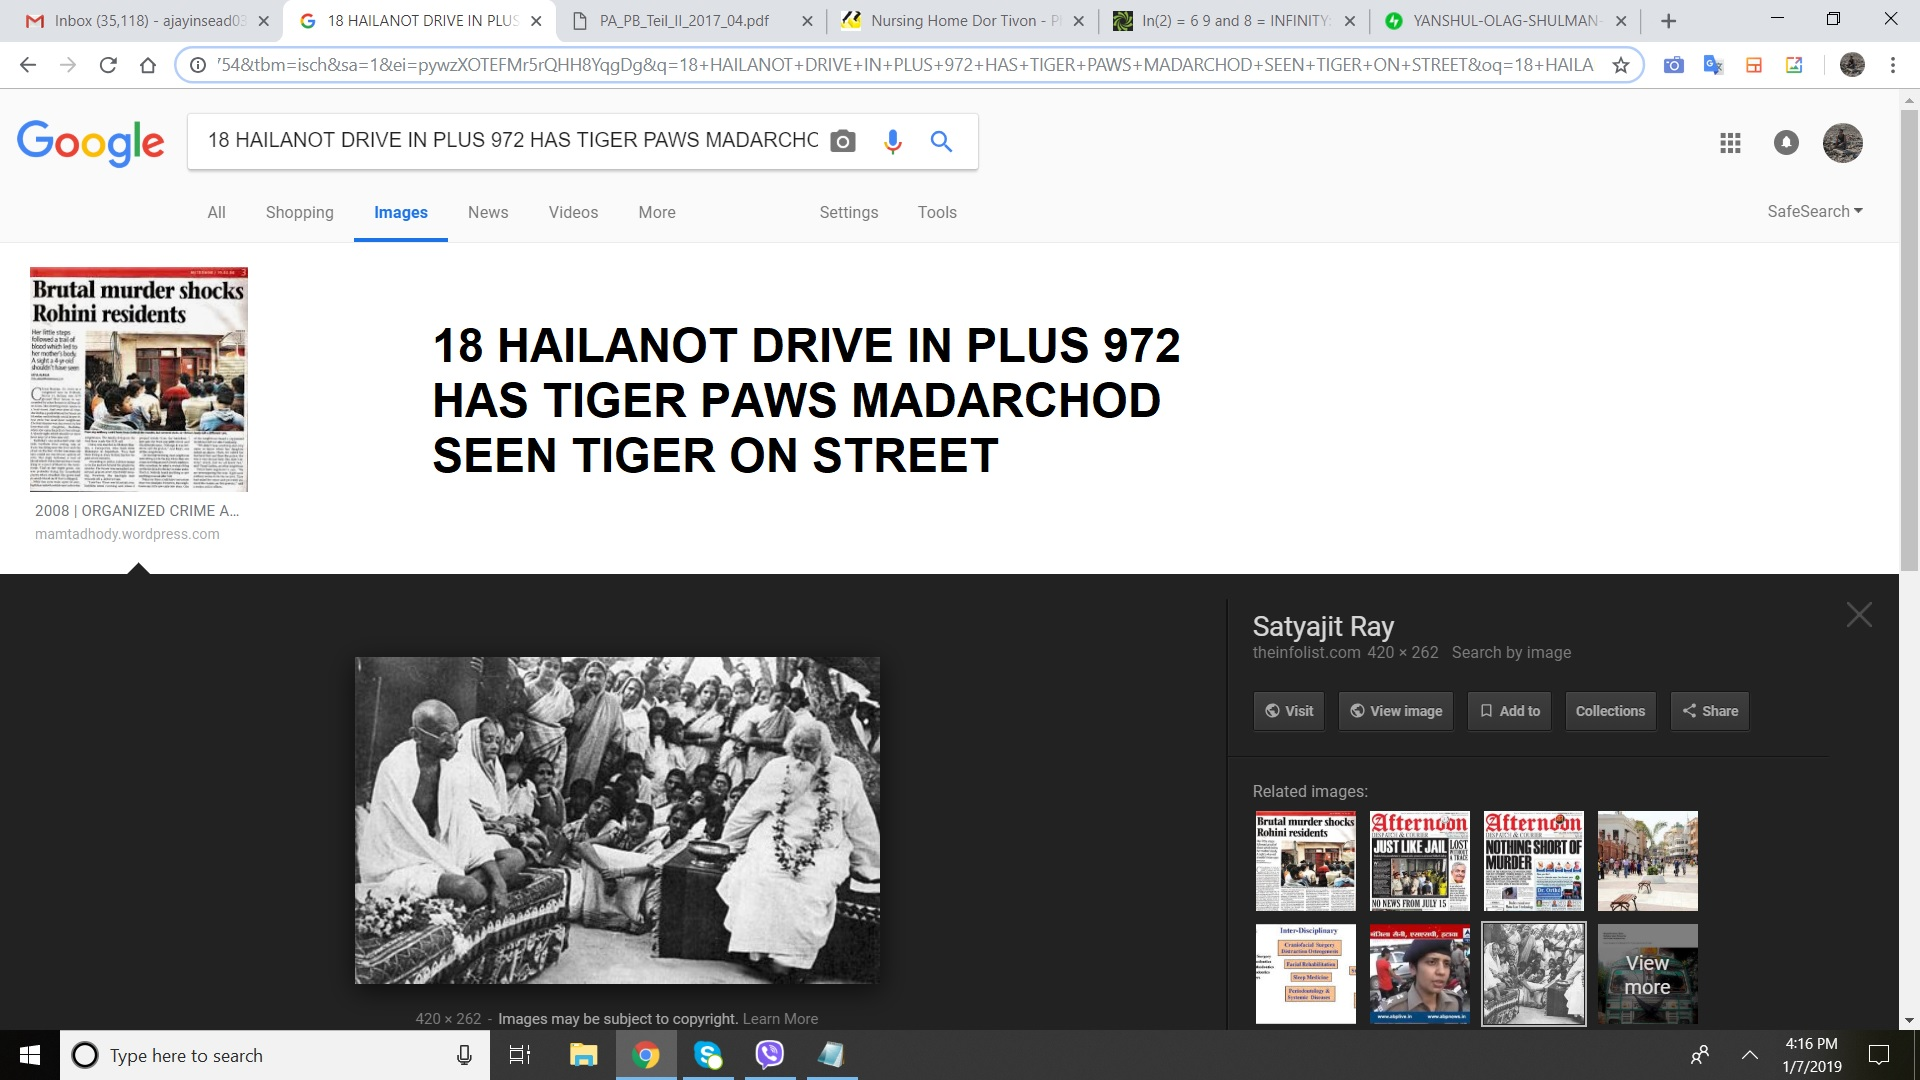 18 hailanot drive in plus 972 has tiger paws madarchod seen tiger on street